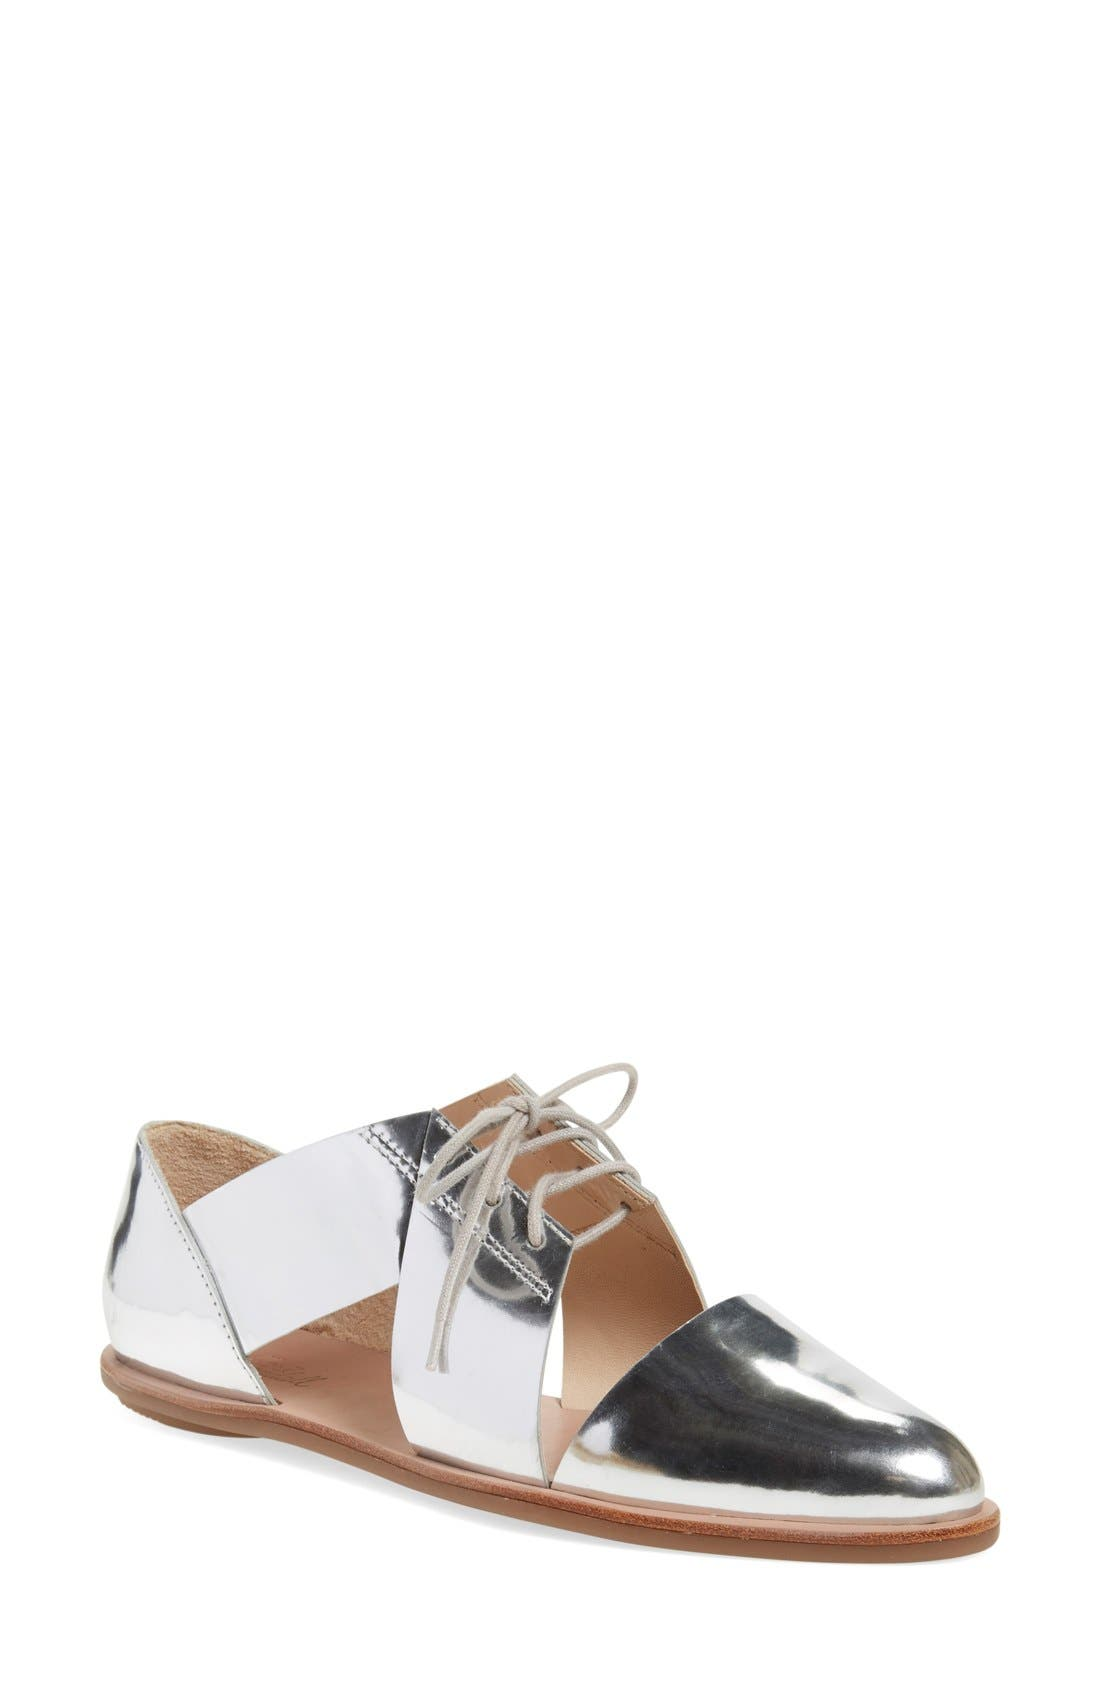 'Willa' Flat,                             Main thumbnail 1, color,                             Silver Mirror Leather